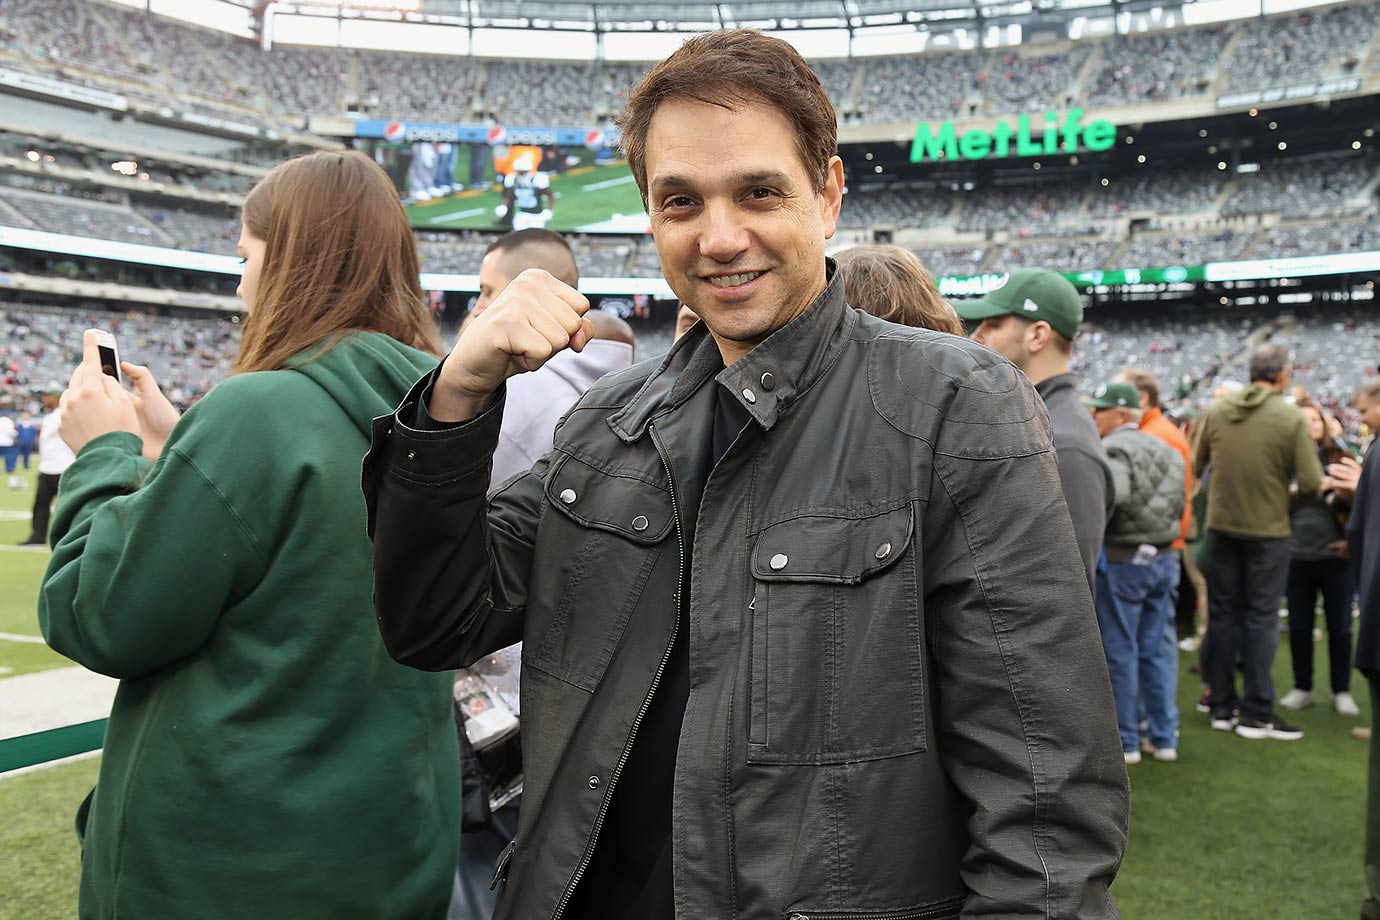 New York Jets vs. New England Patriots on Dec. 27, 2015 at MetLife Stadium in East Rutherford, N.J.